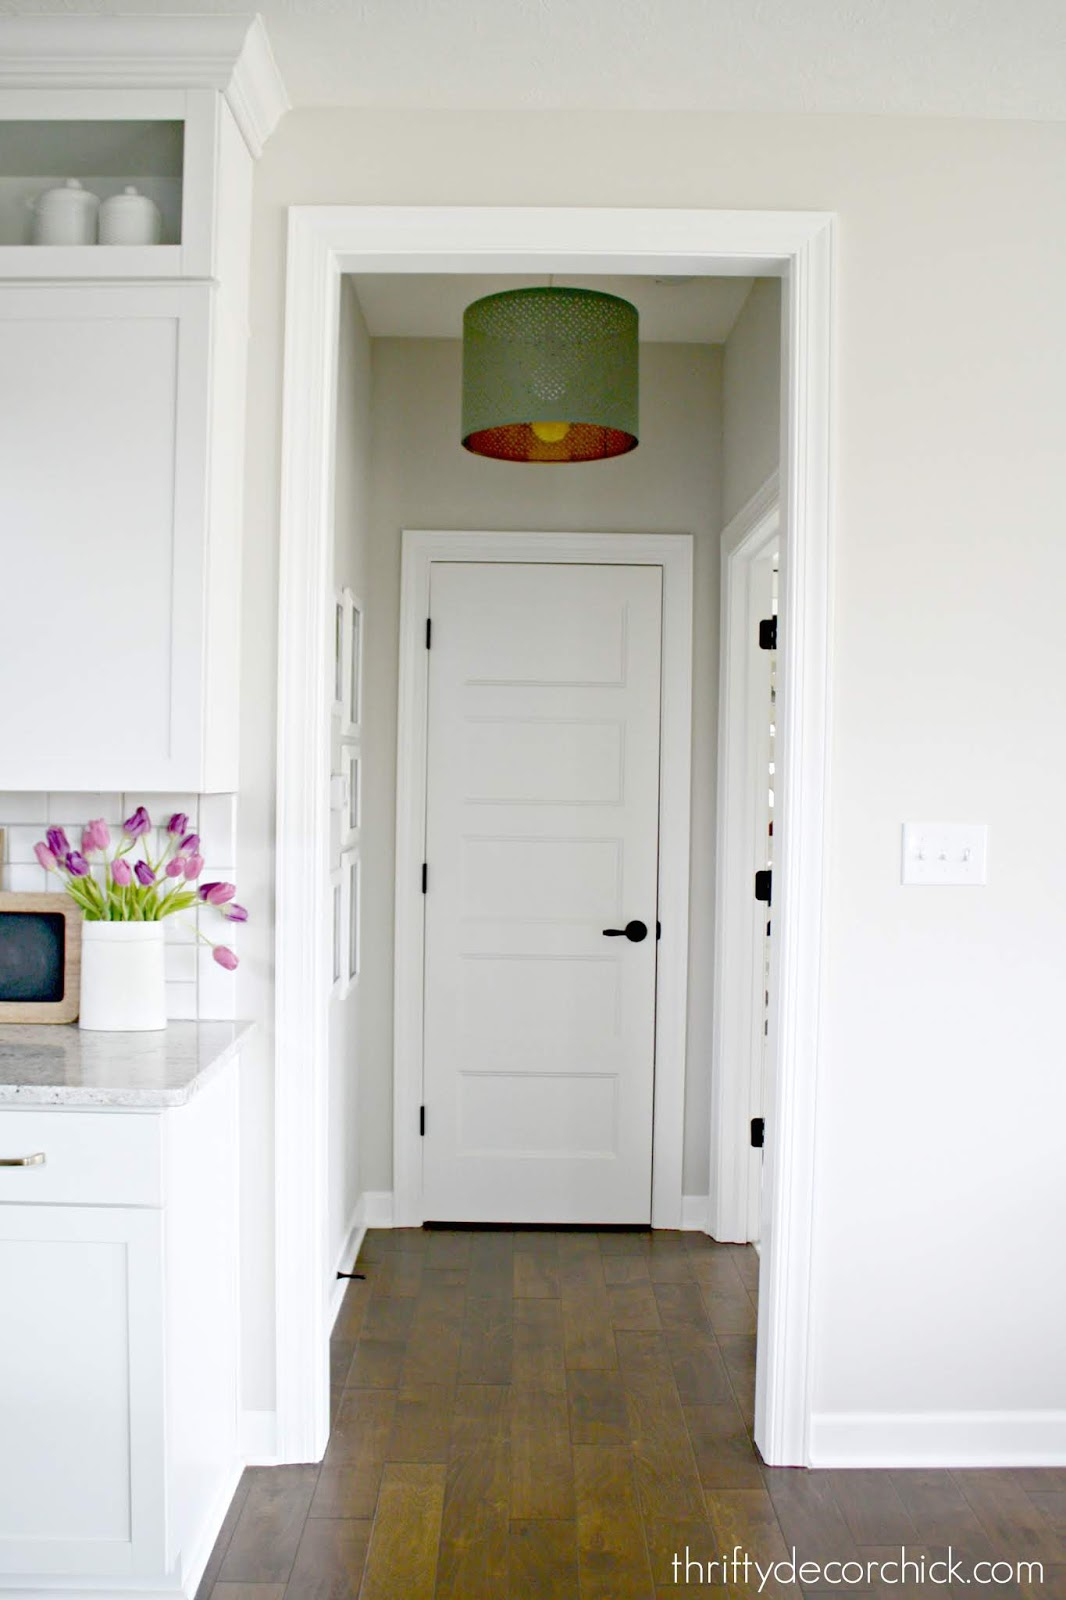 Changing recessed light to pendant light